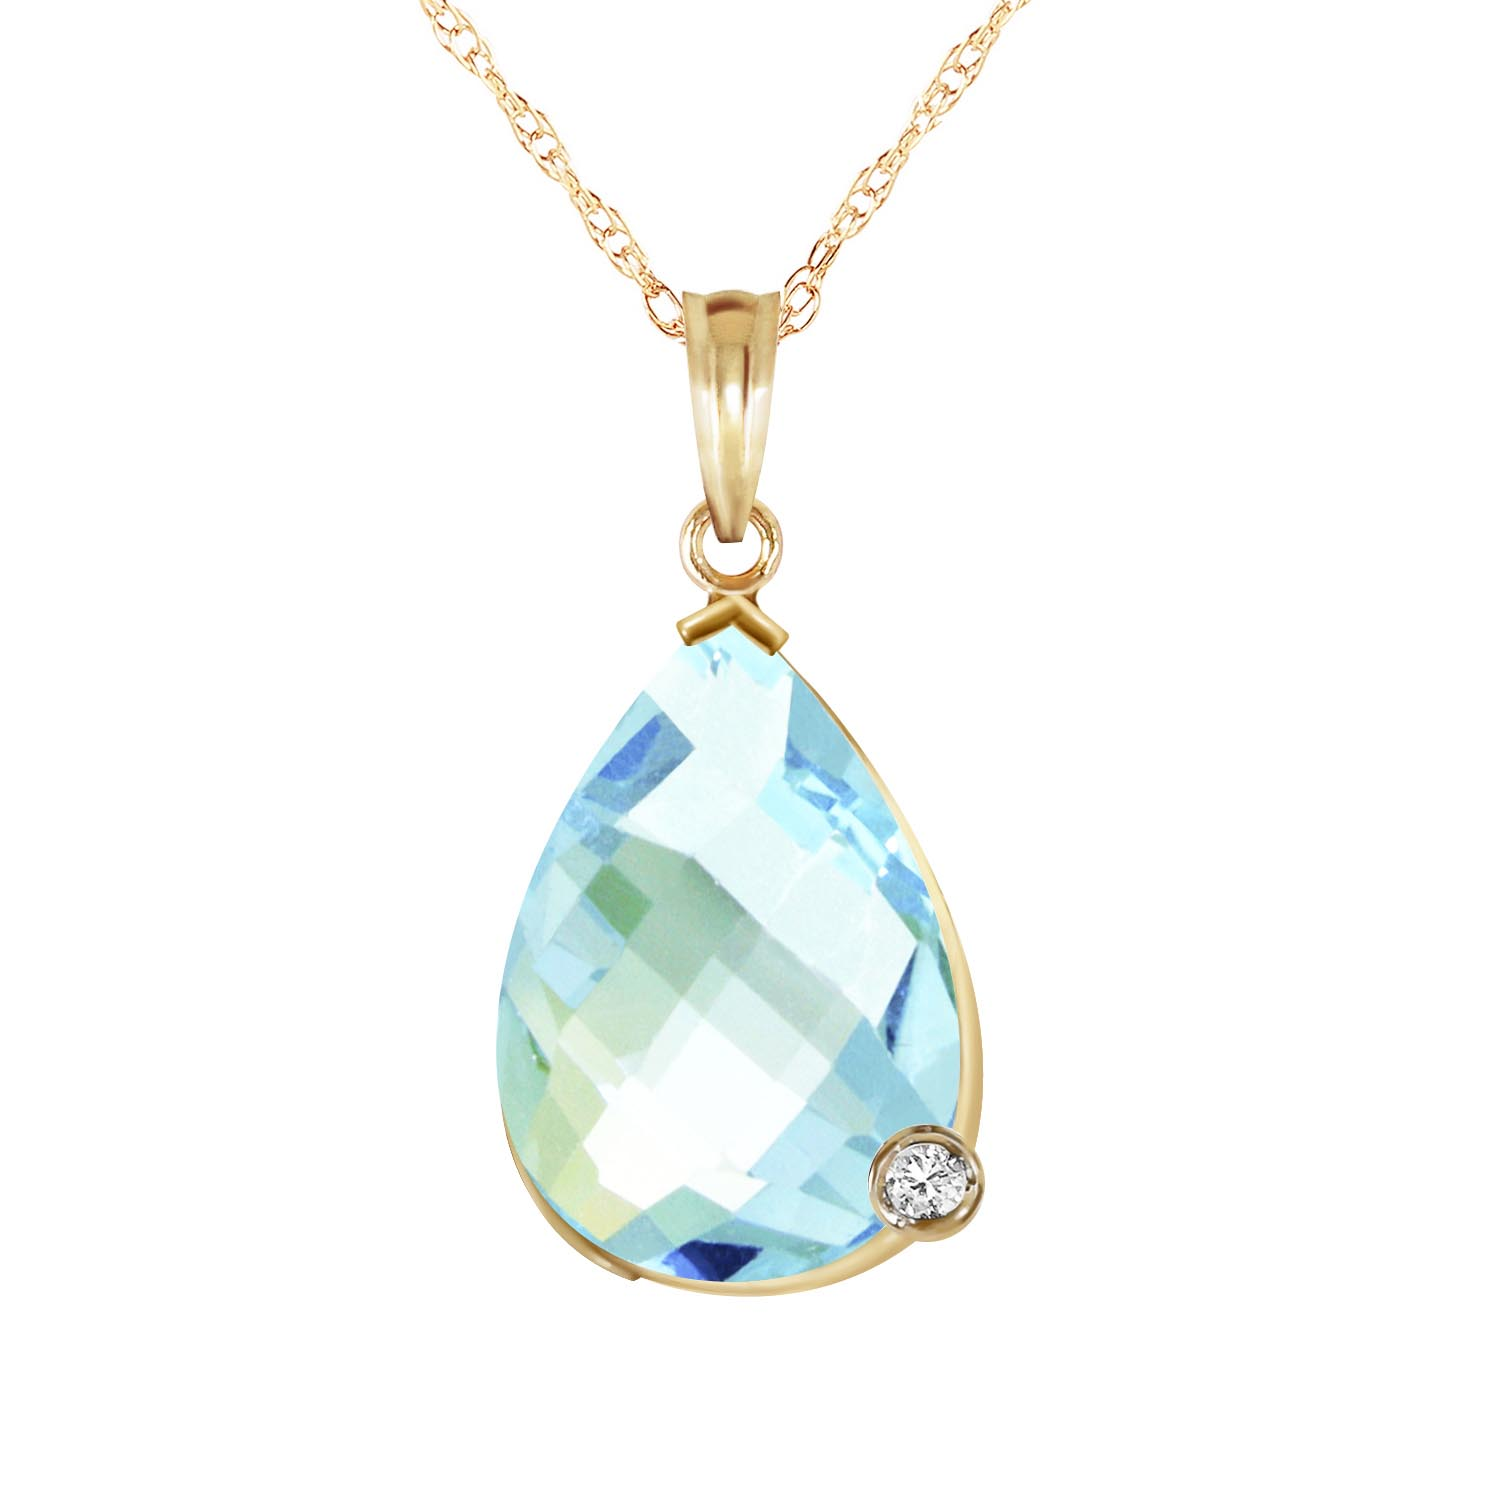 Blue Topaz and Diamond Chequer Pendant Necklace 6.5ct in 9ct Gold